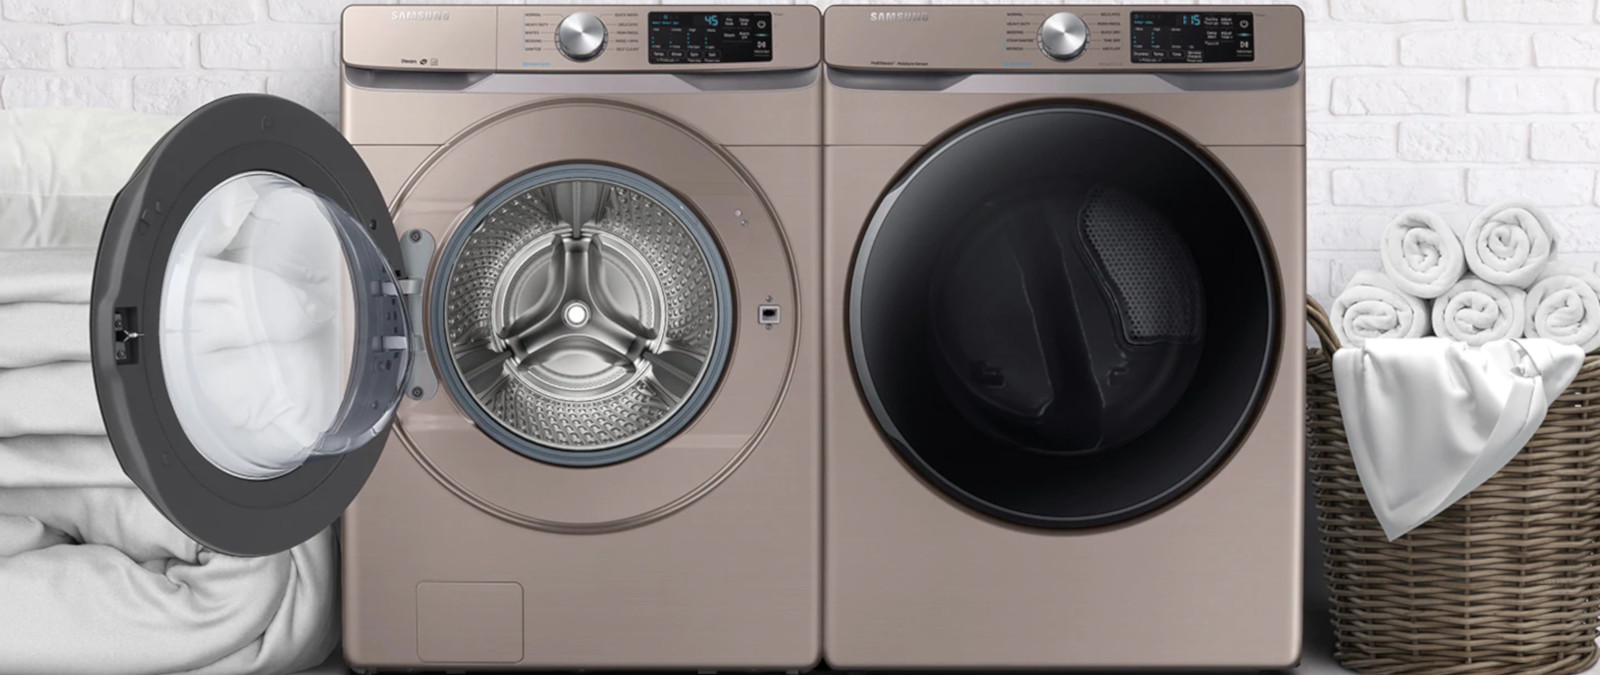 Samsung Front Load Washer Samsung 4 5 Cu Ft Front Load Washer W Steam Wf45r6100ac